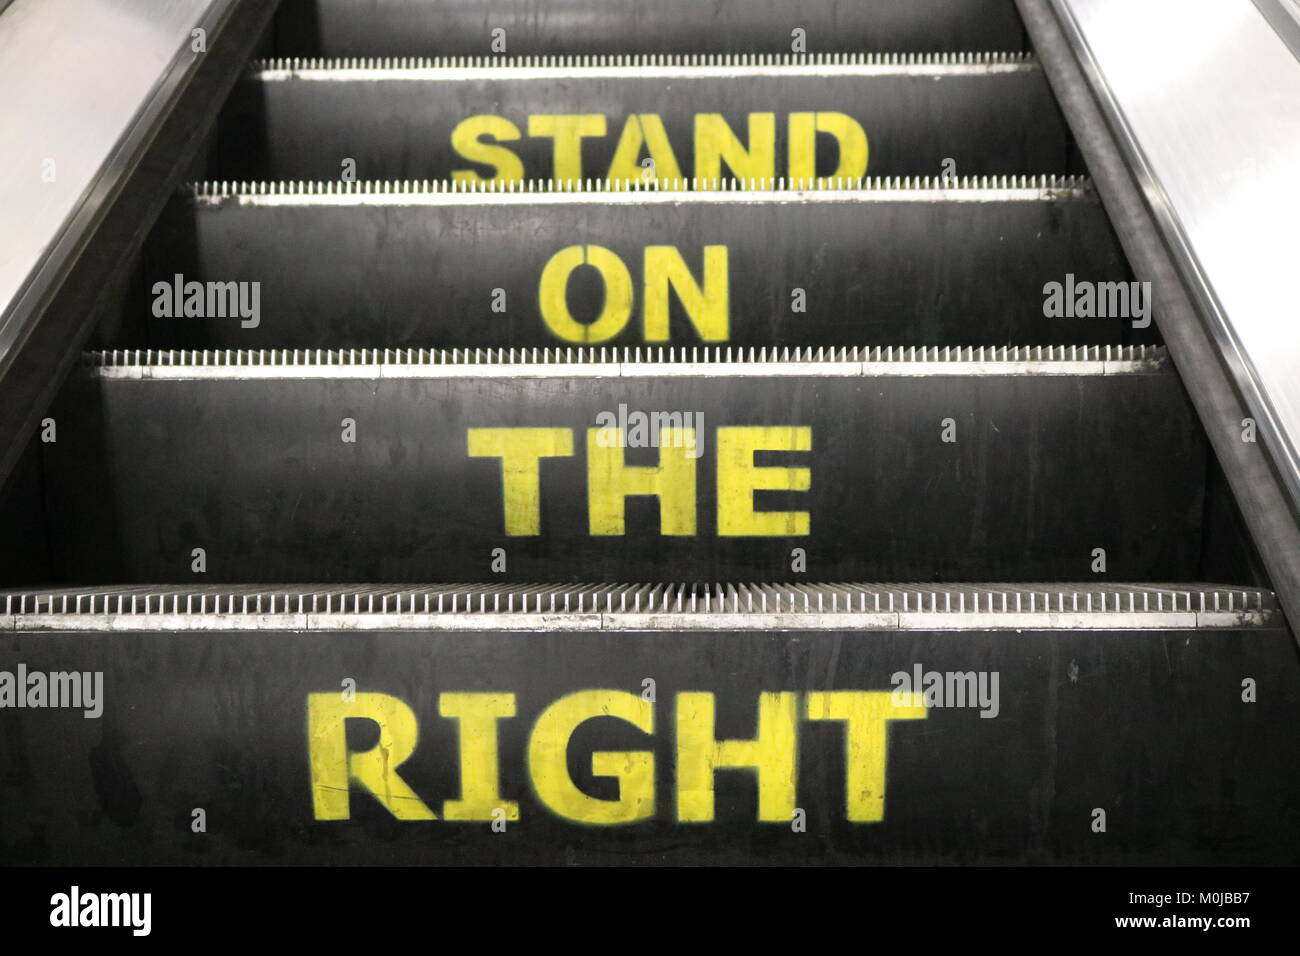 'Stand On The Right' sign on escalator, London - Stock Image